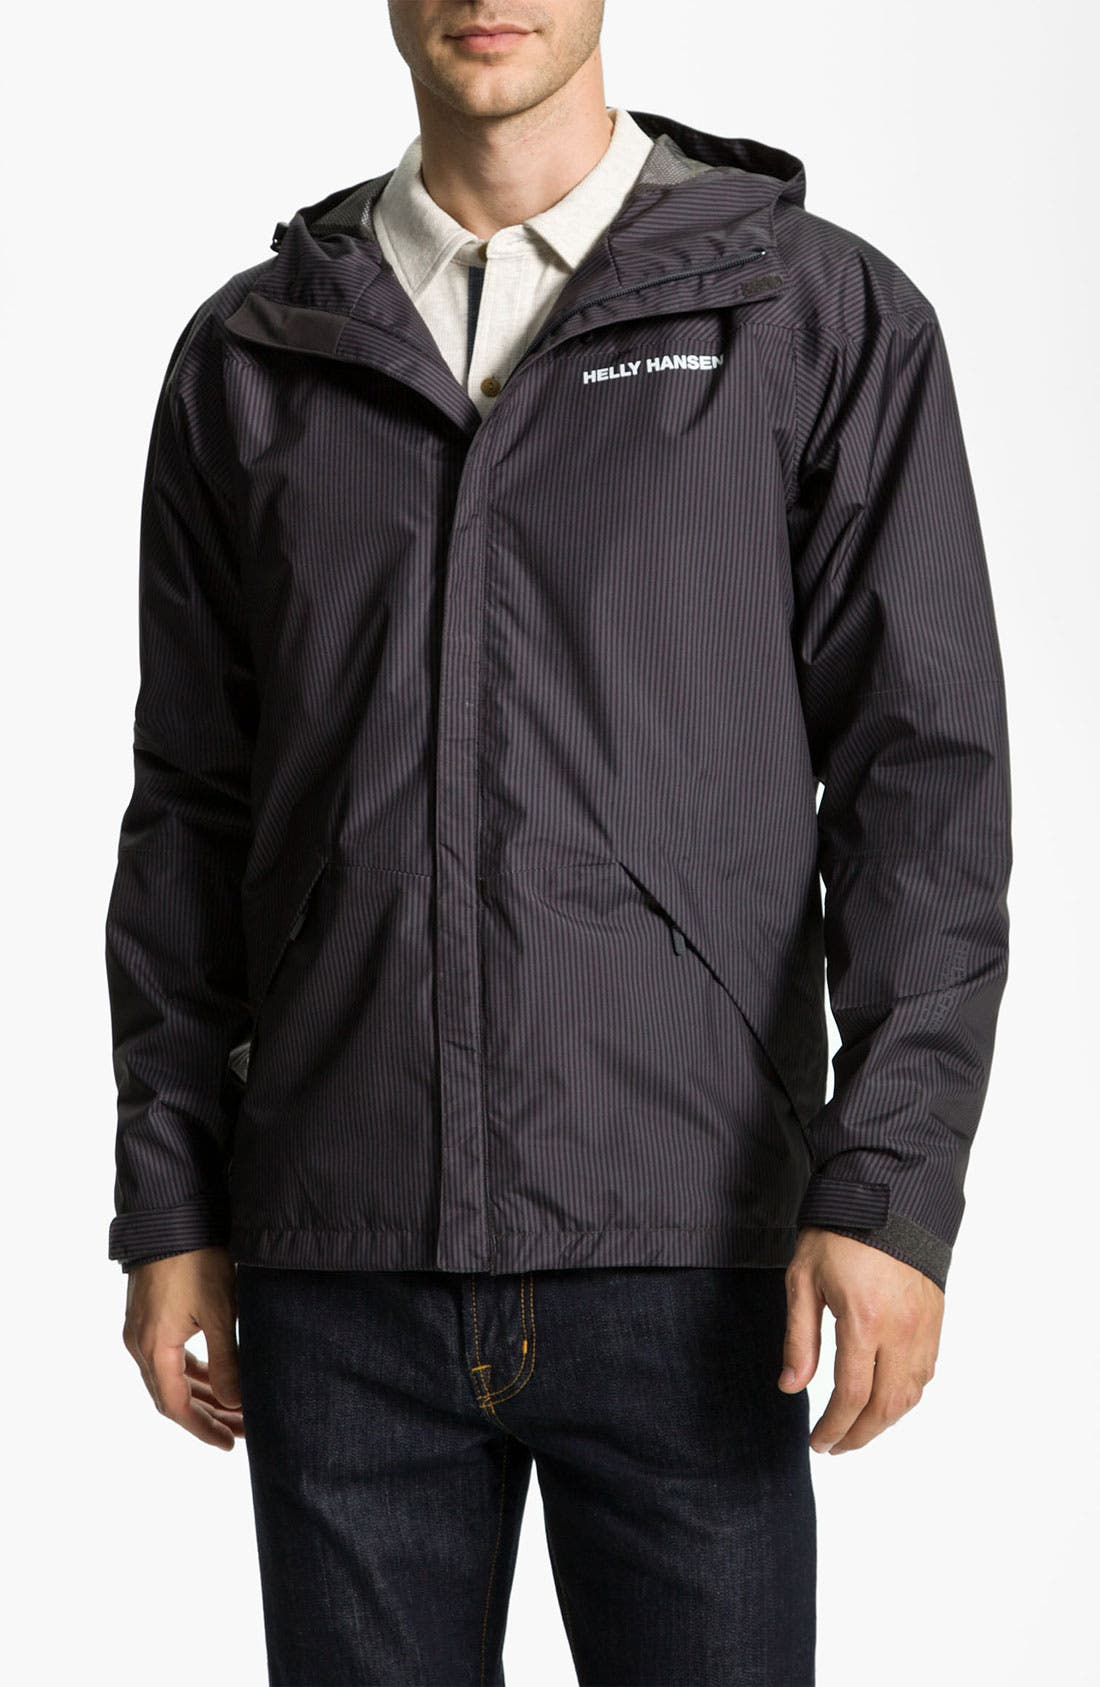 Main Image - Helly Hansen 'Granville' Jacket